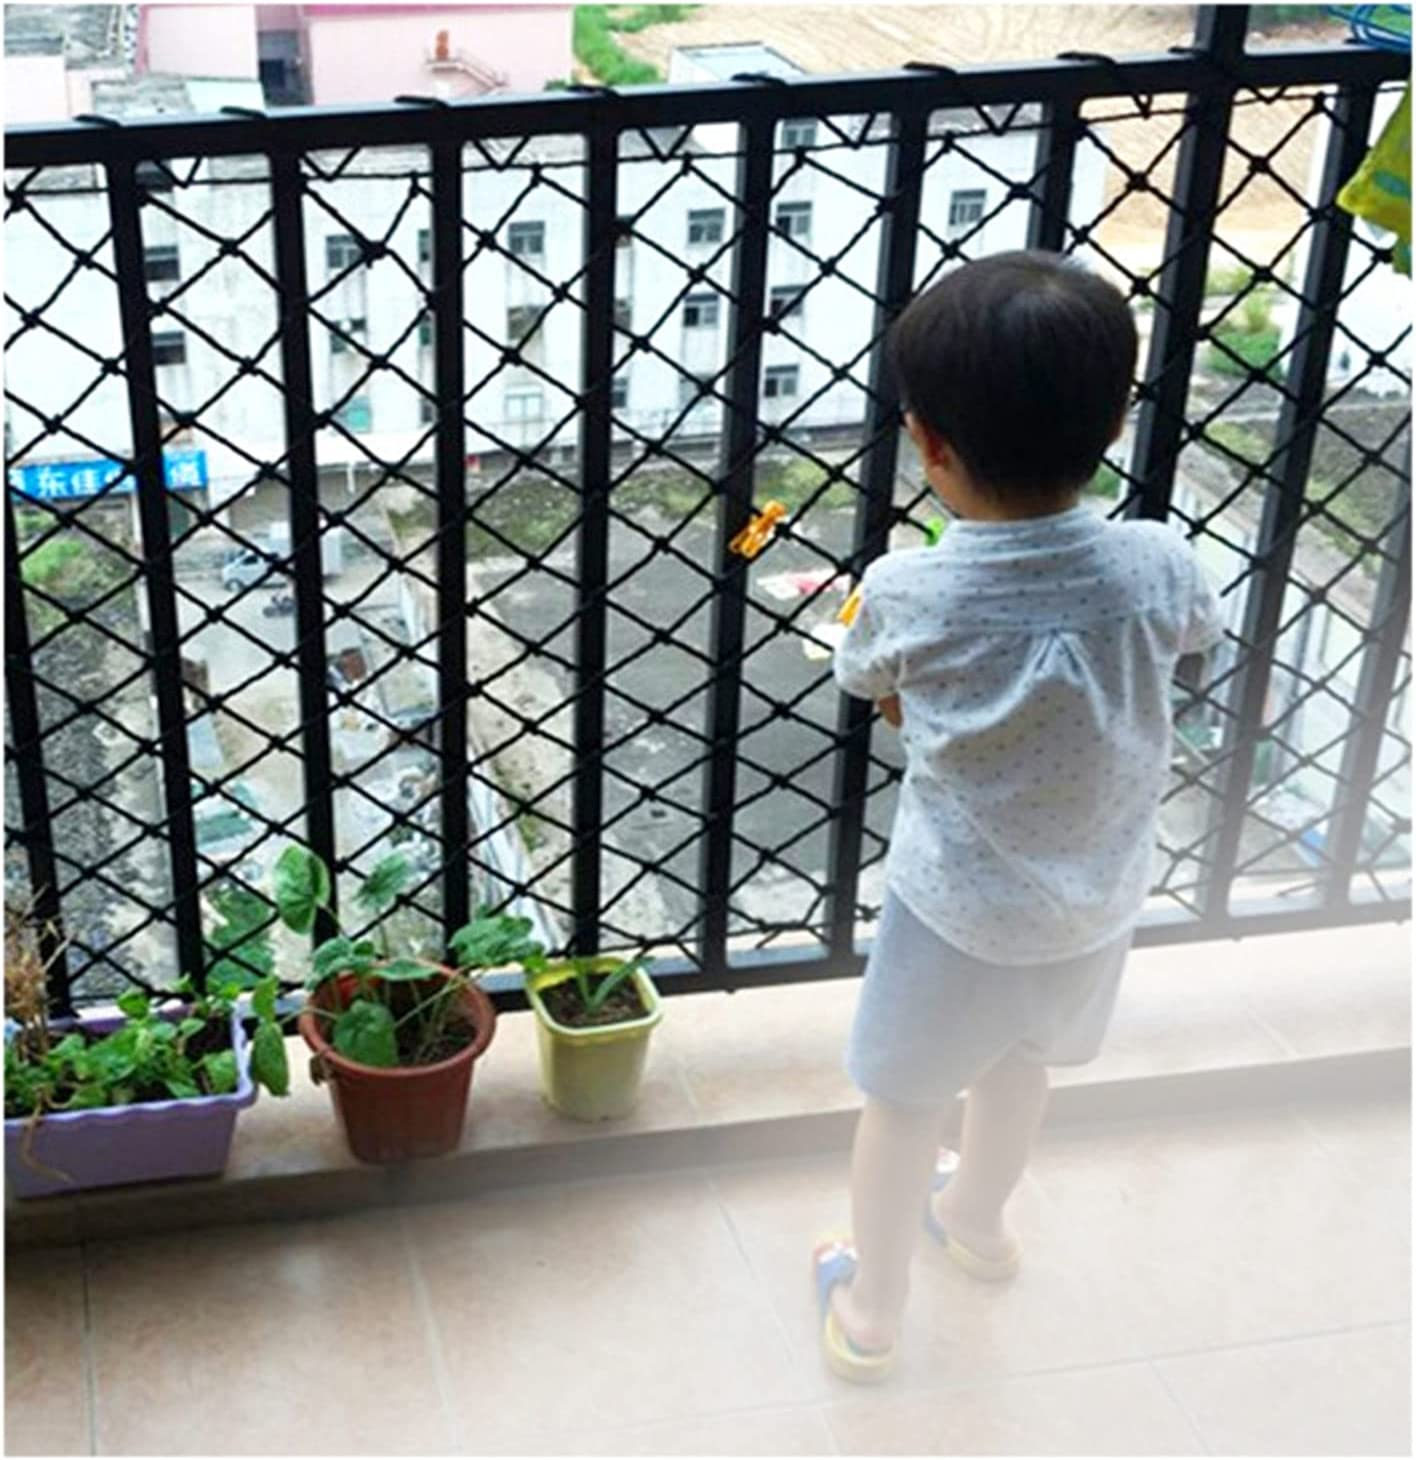 AWSAD Cheap sale Protective Net Woven Child Safety Netting Cat Pet Fenc In a popularity